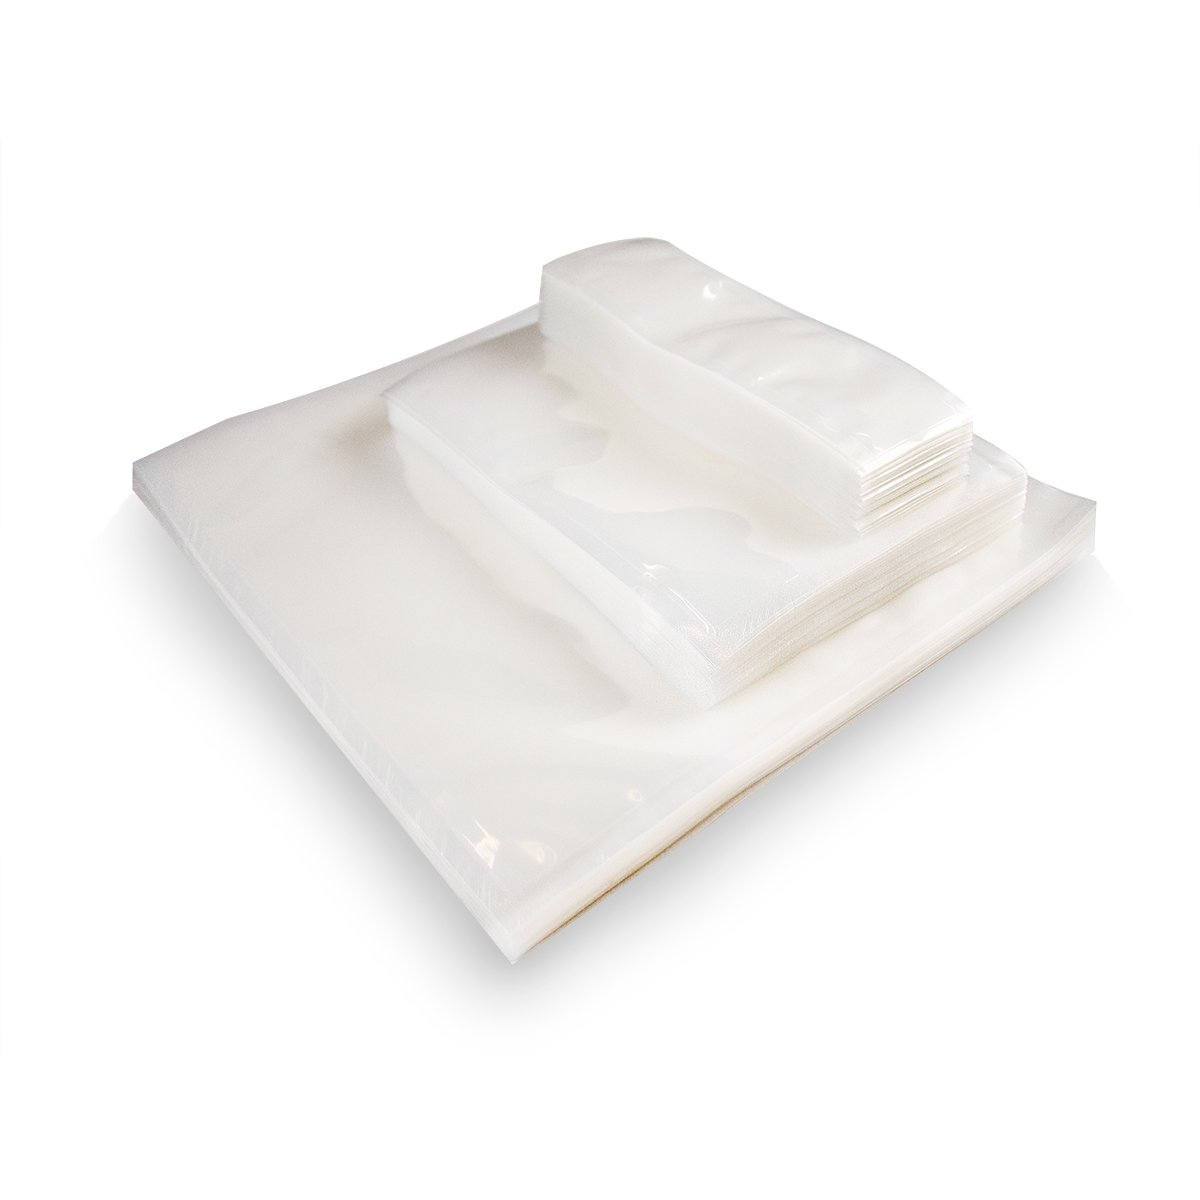 UltraSource Vacuum Chamber Pouches, 6 x 10, 3 mil (Box of 1000)